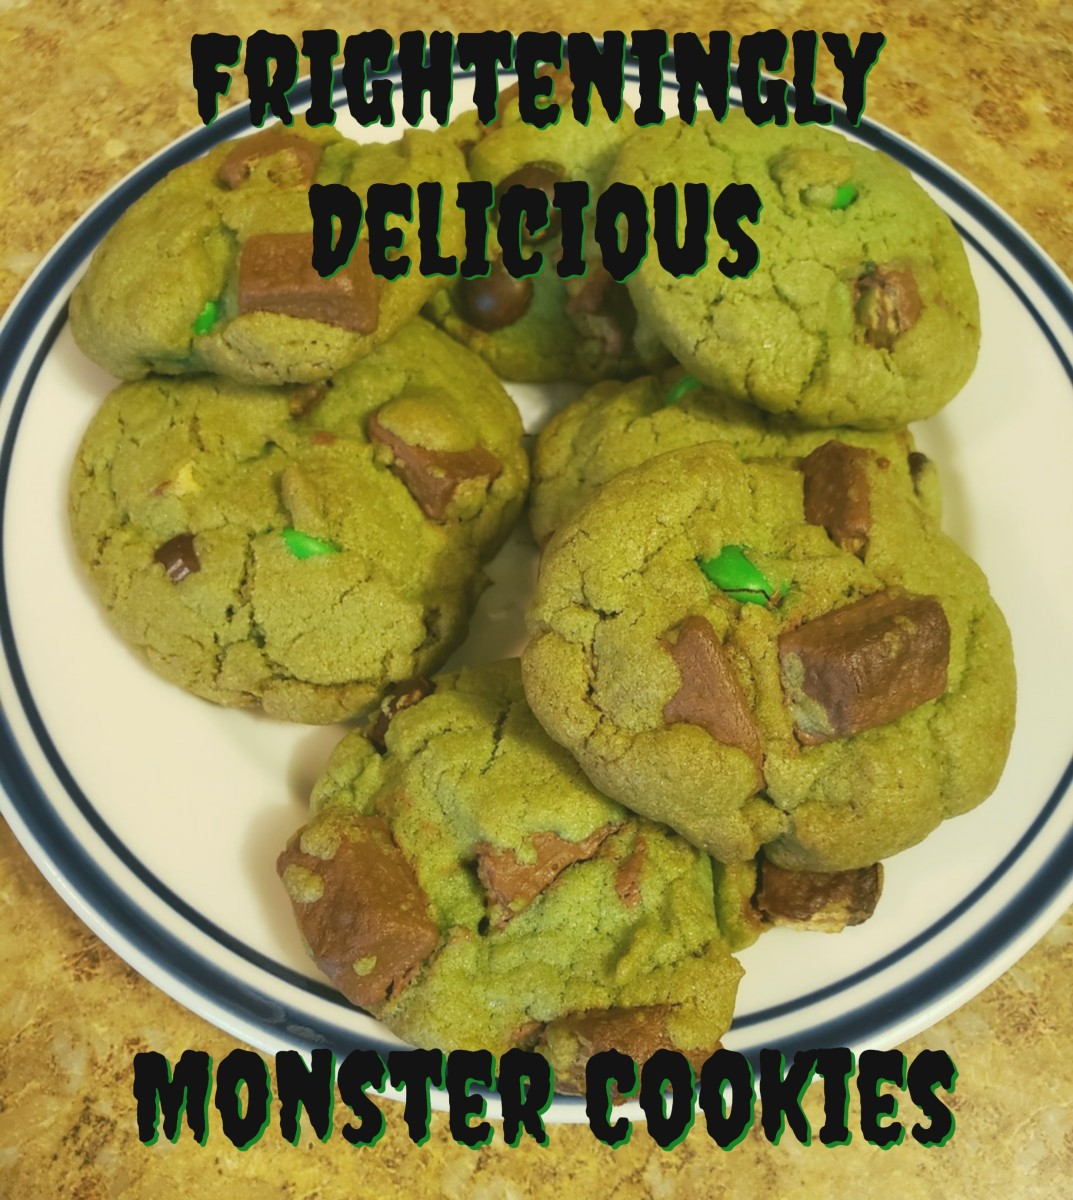 kit-kat-monster-cookies